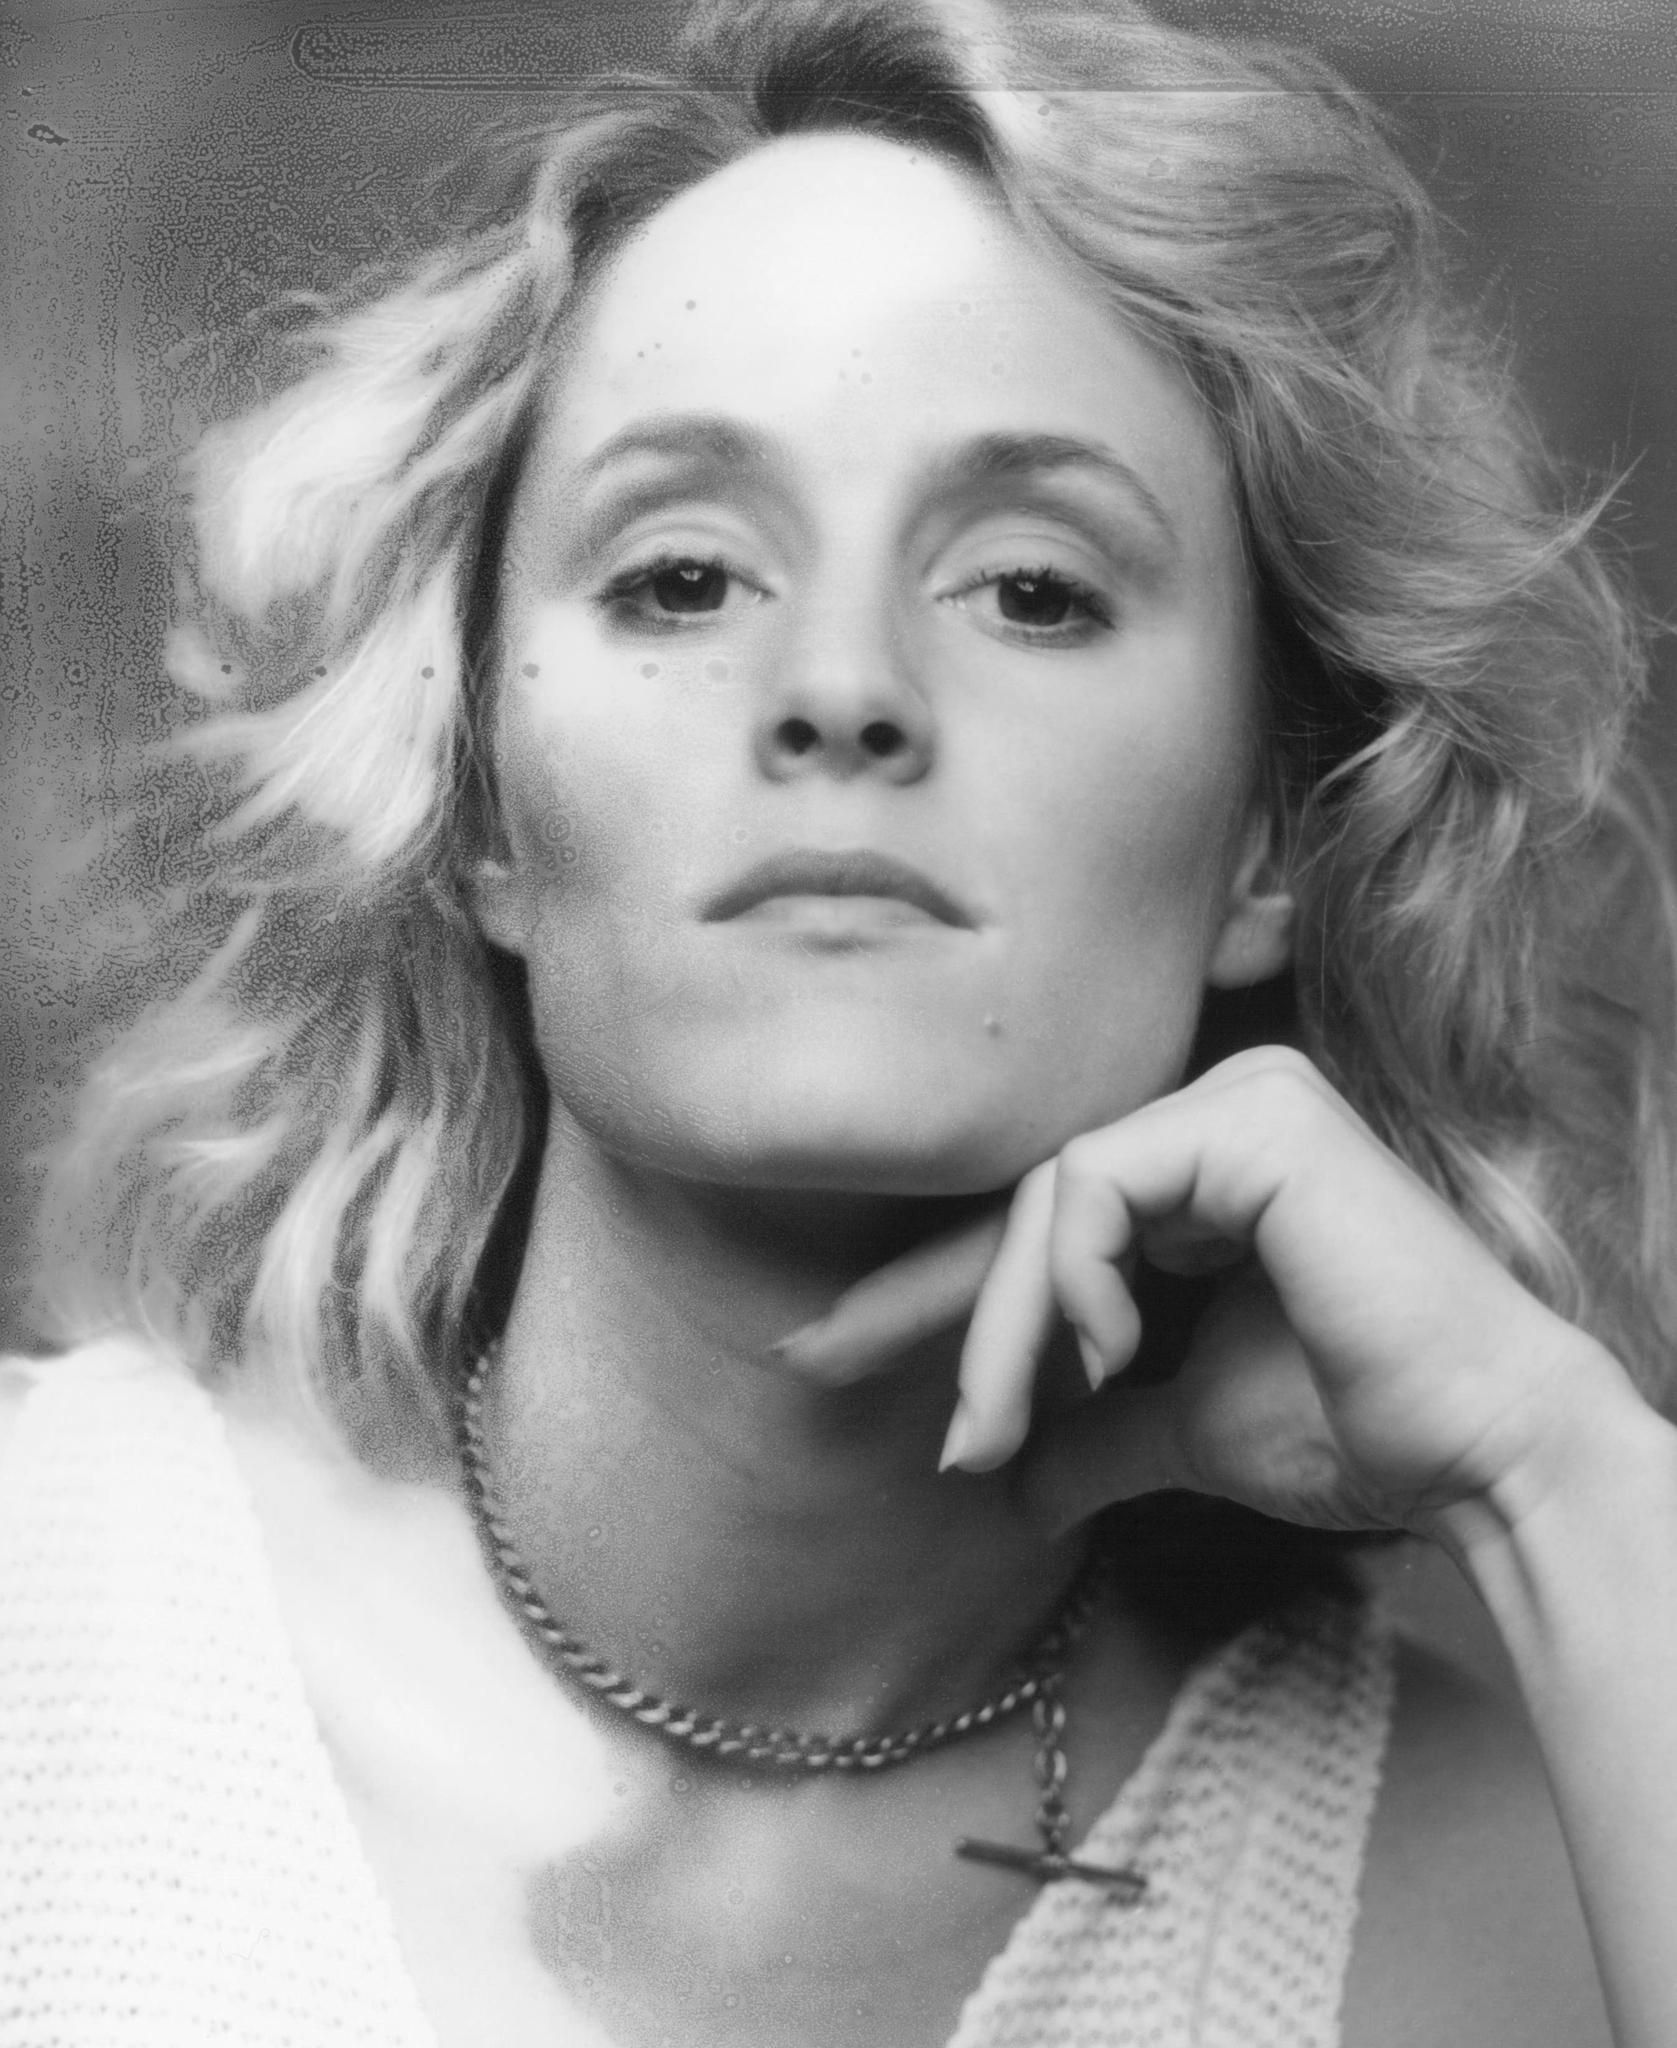 Still of Mary Stuart Masterson in Fried Green Tomatoes (1991) http://www.movpins.com/dHQwMTAxOTIx/fried-green-tomatoes-(1991)/still-2887945728